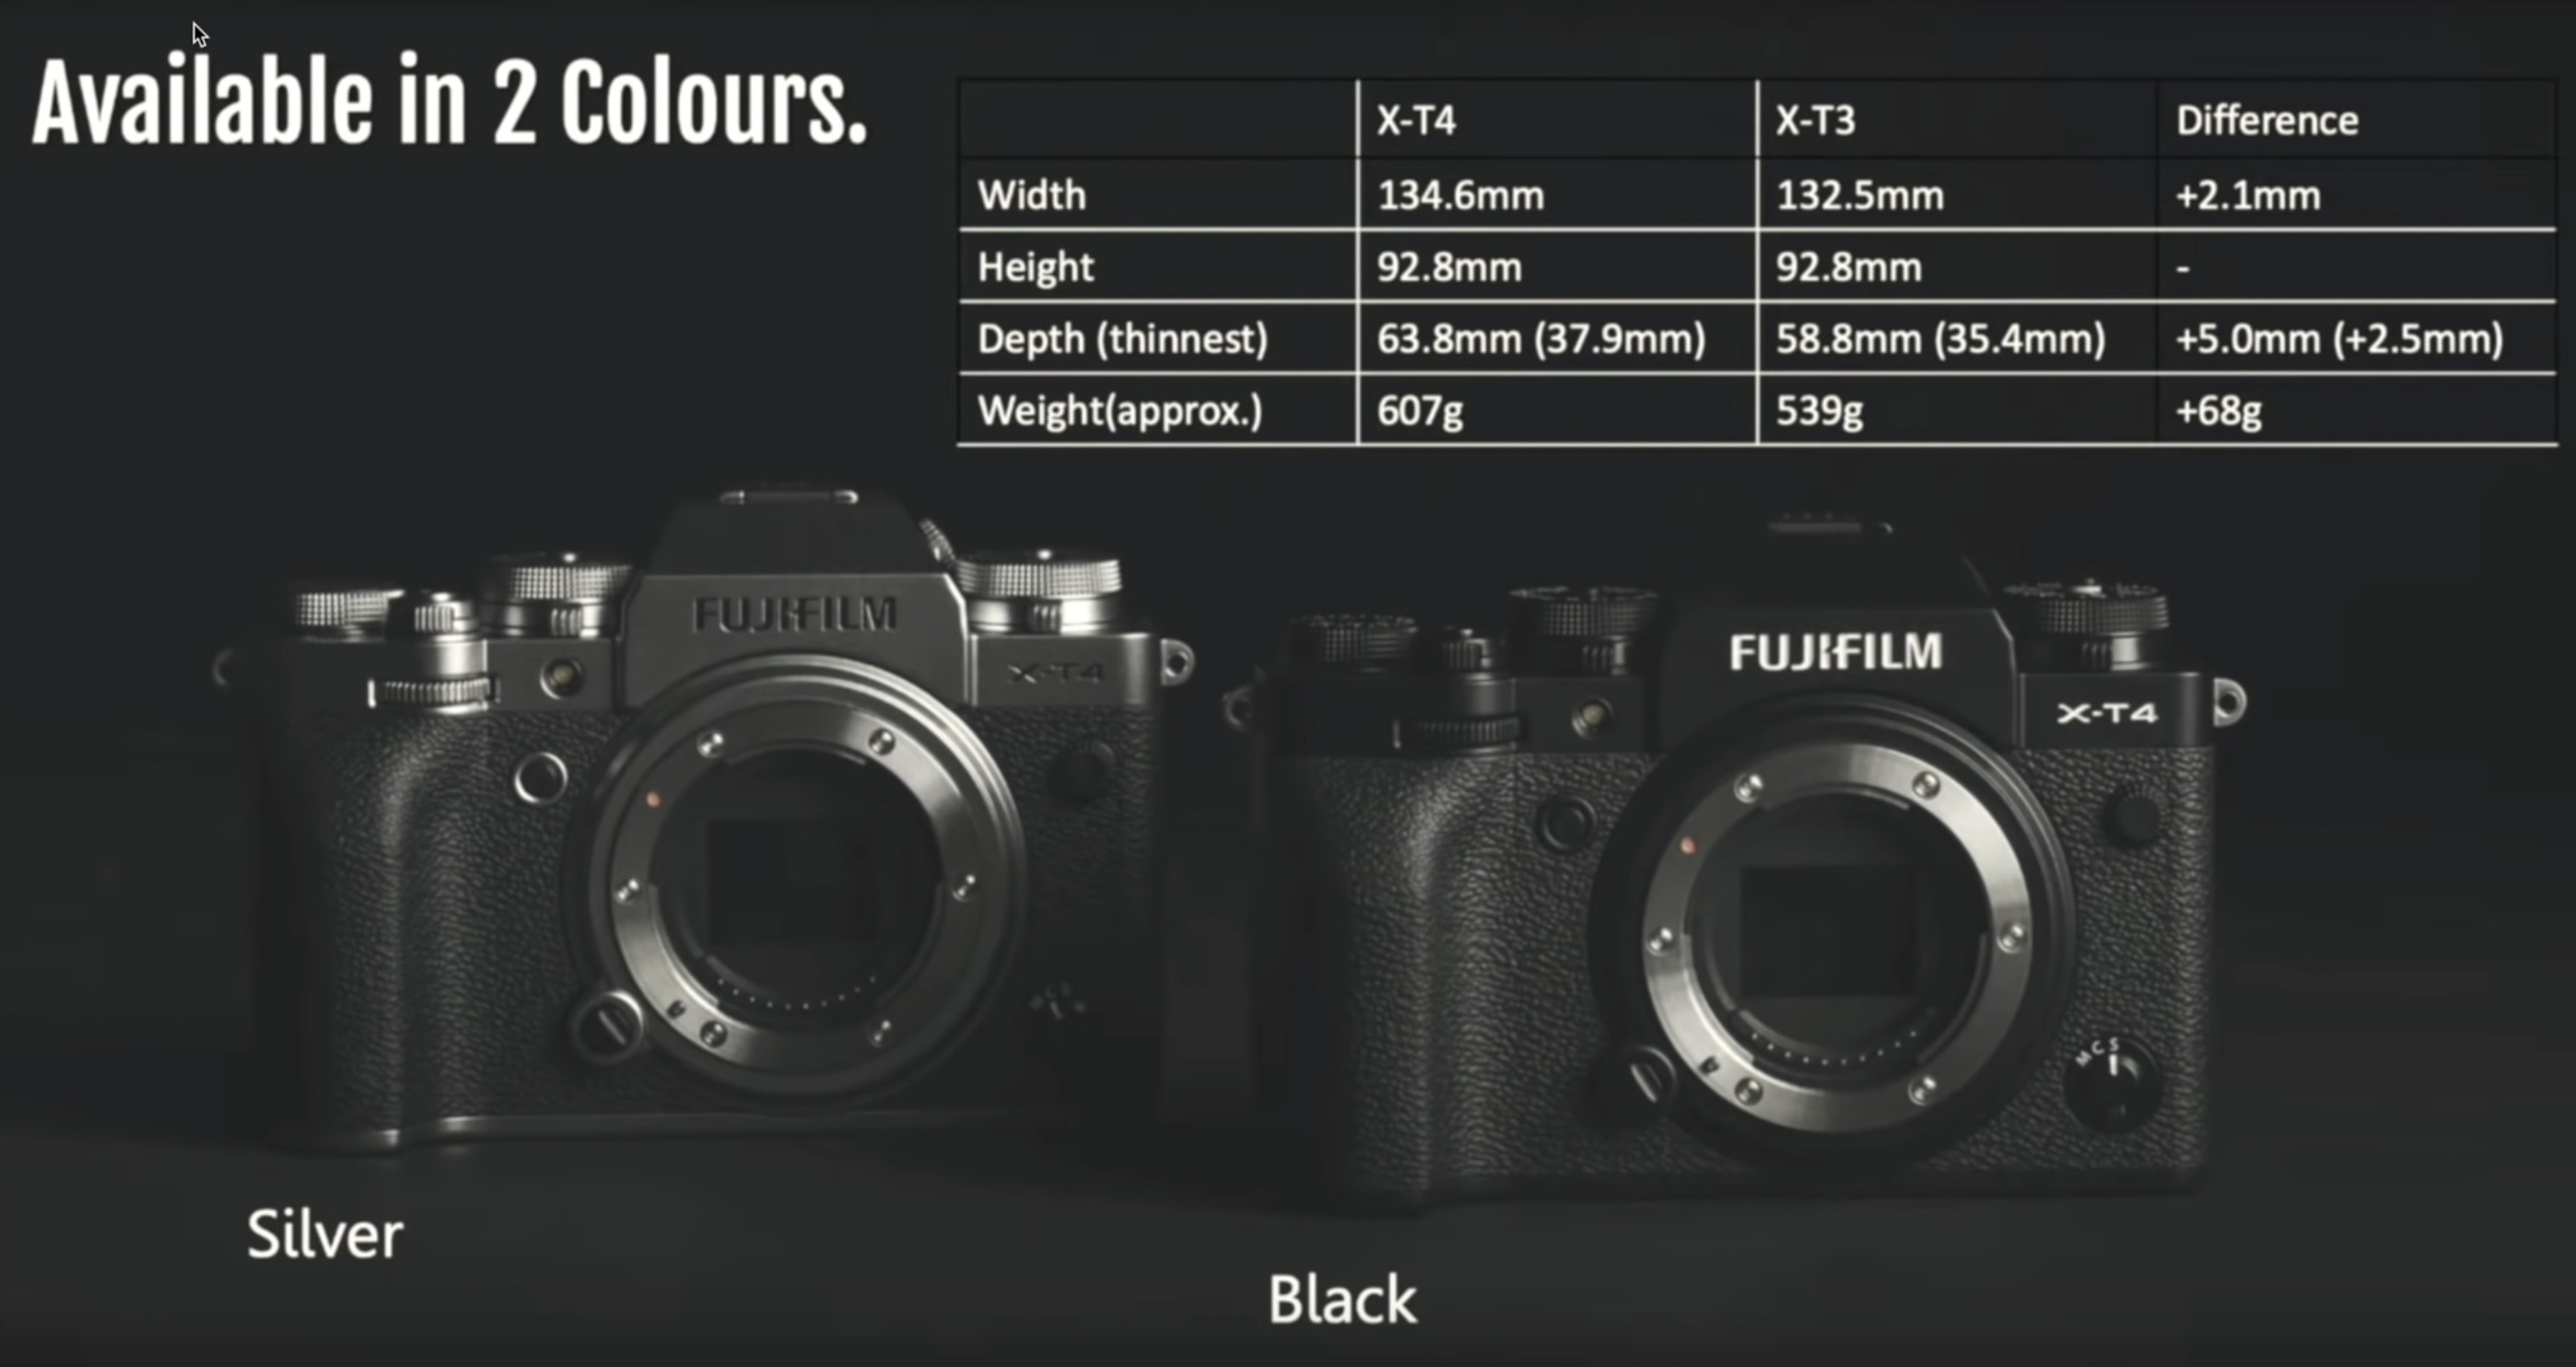 différence taille X-T4 vs X-T3